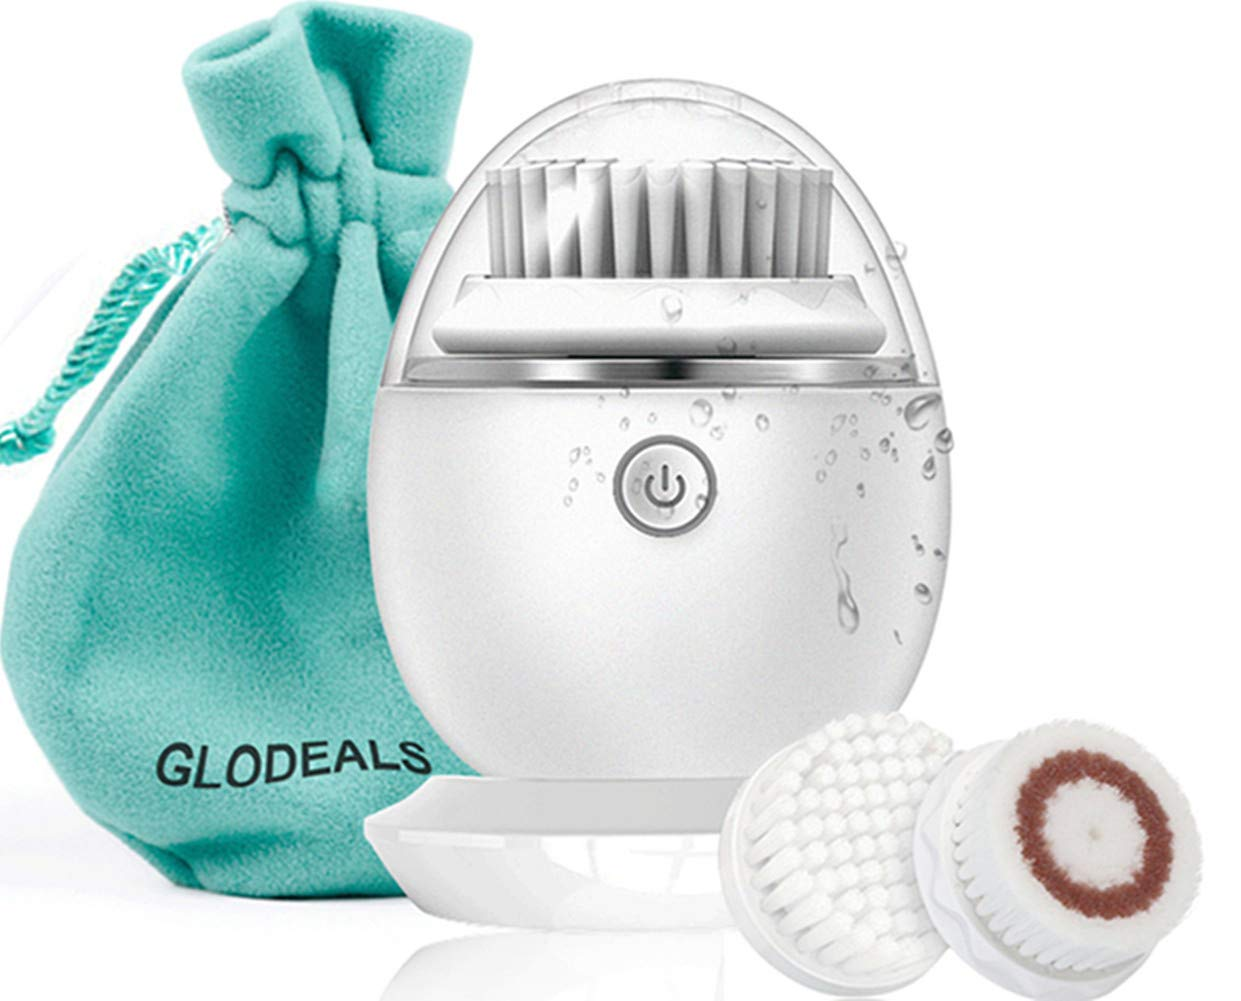 GloDeals Facial Cleansing Brush, Electric Body Facial Hair Removal Face Brush Wireless Recgargeable Waterproof Face Wash Brush (white)